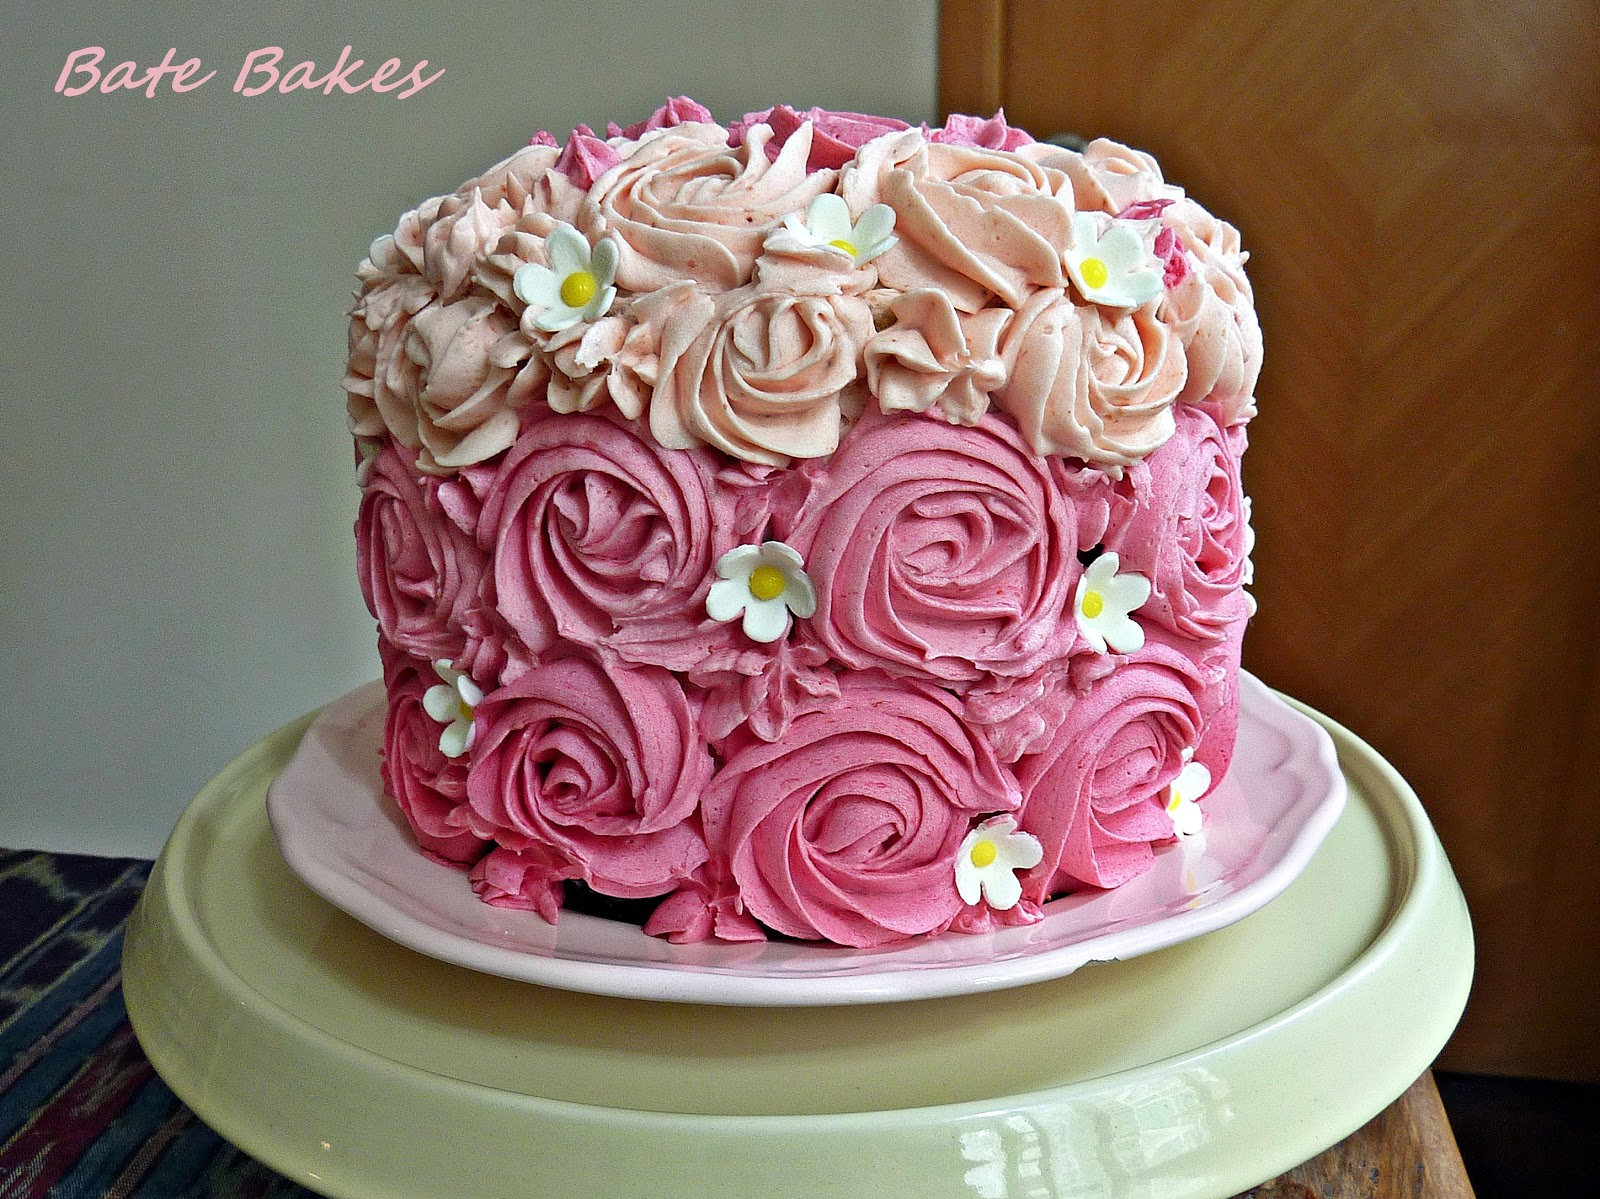 Bate Bakes Neapolitan Rose Cake with Strawberry Buttercream